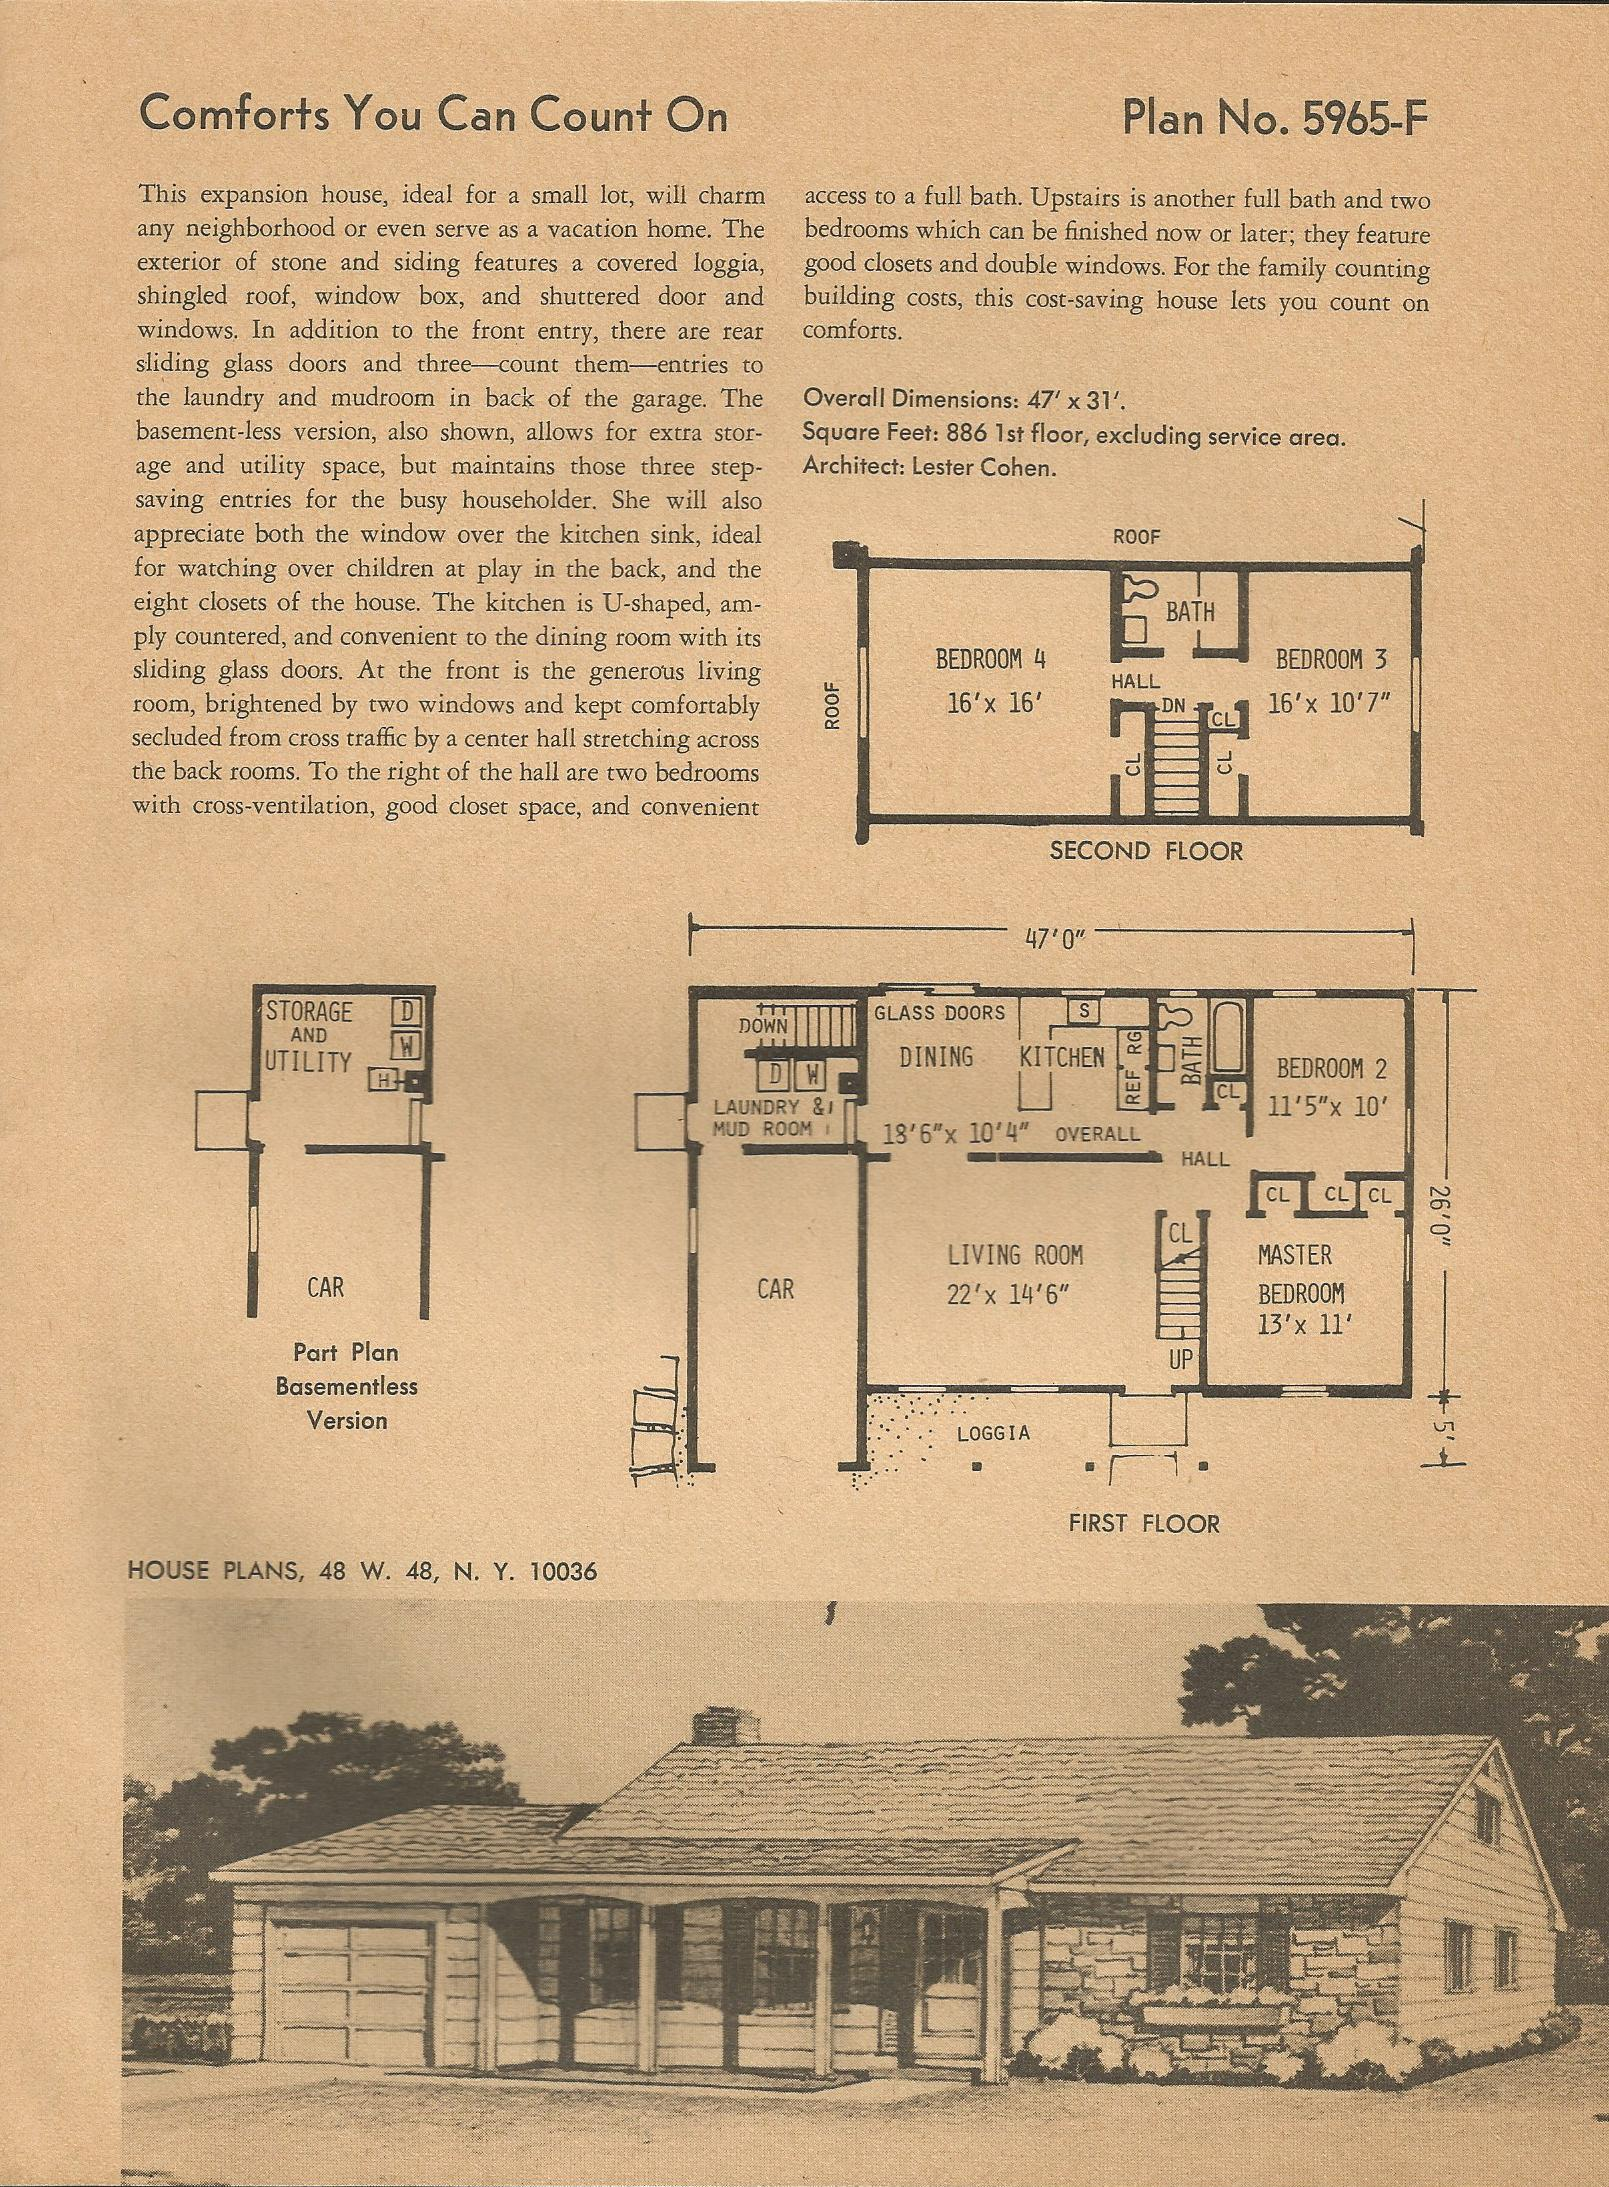 1970s ranch house plans